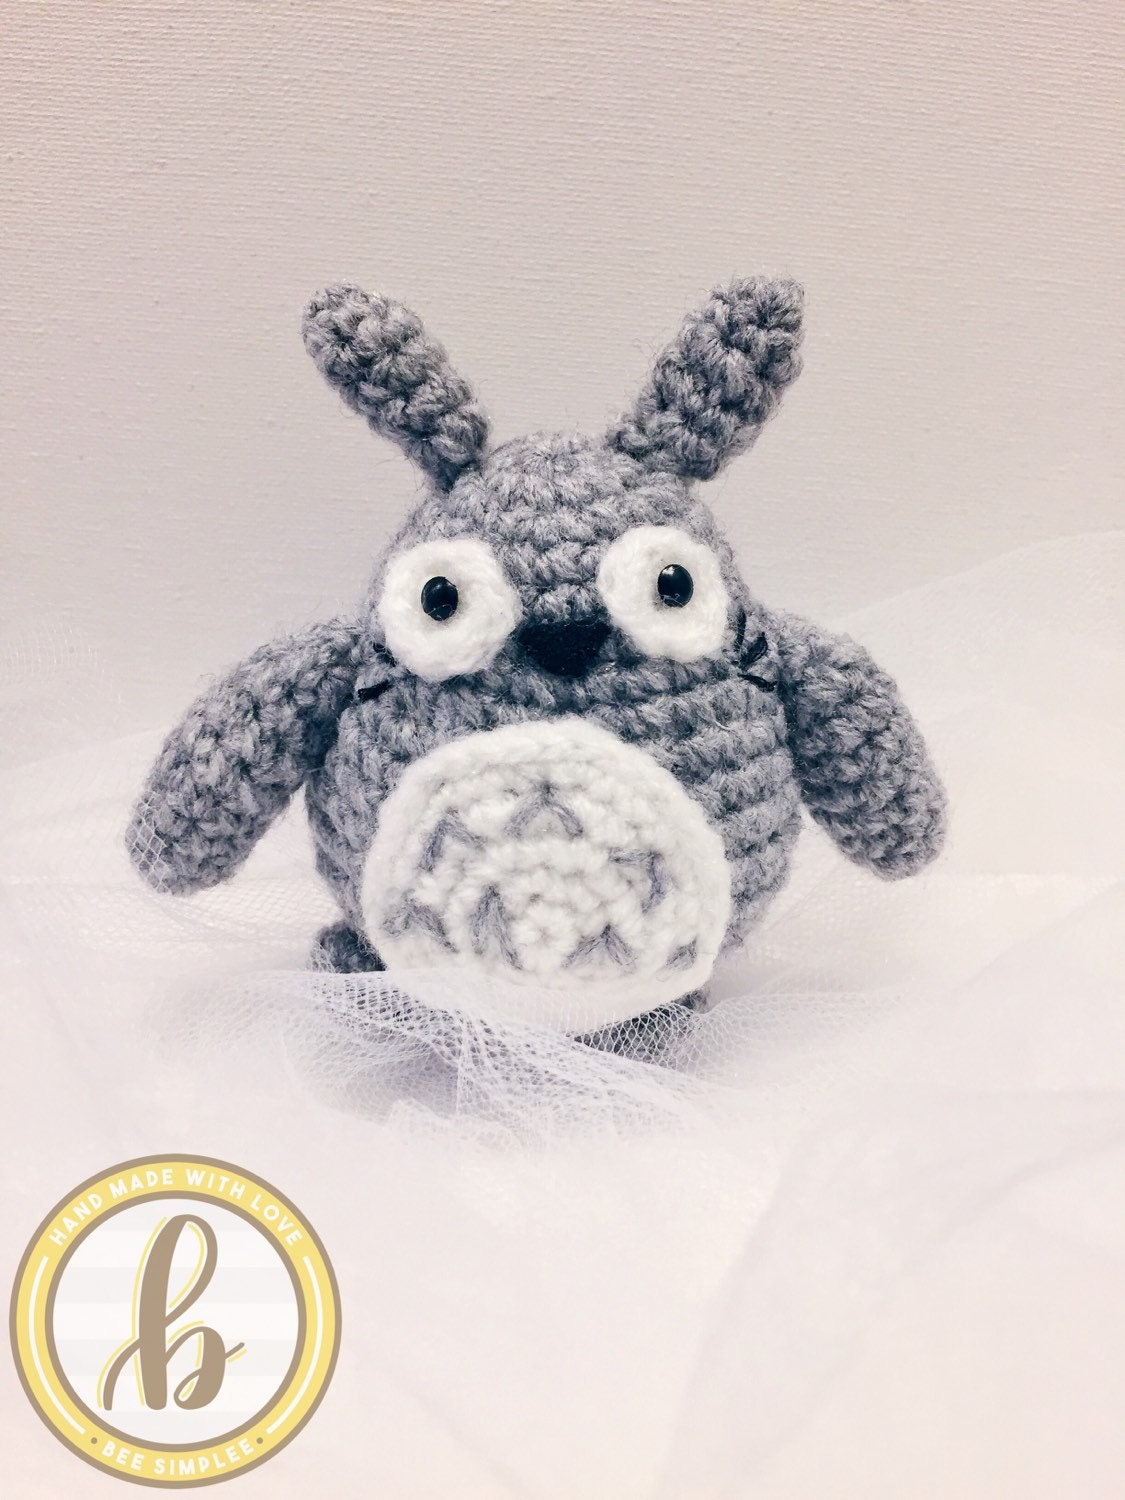 My Neighbor Totoro   Decocration Keychain Charm   Handmade Cute Amigurumi Crochet doll  Anime Lover Gift for her  Stroller Mobile Toy